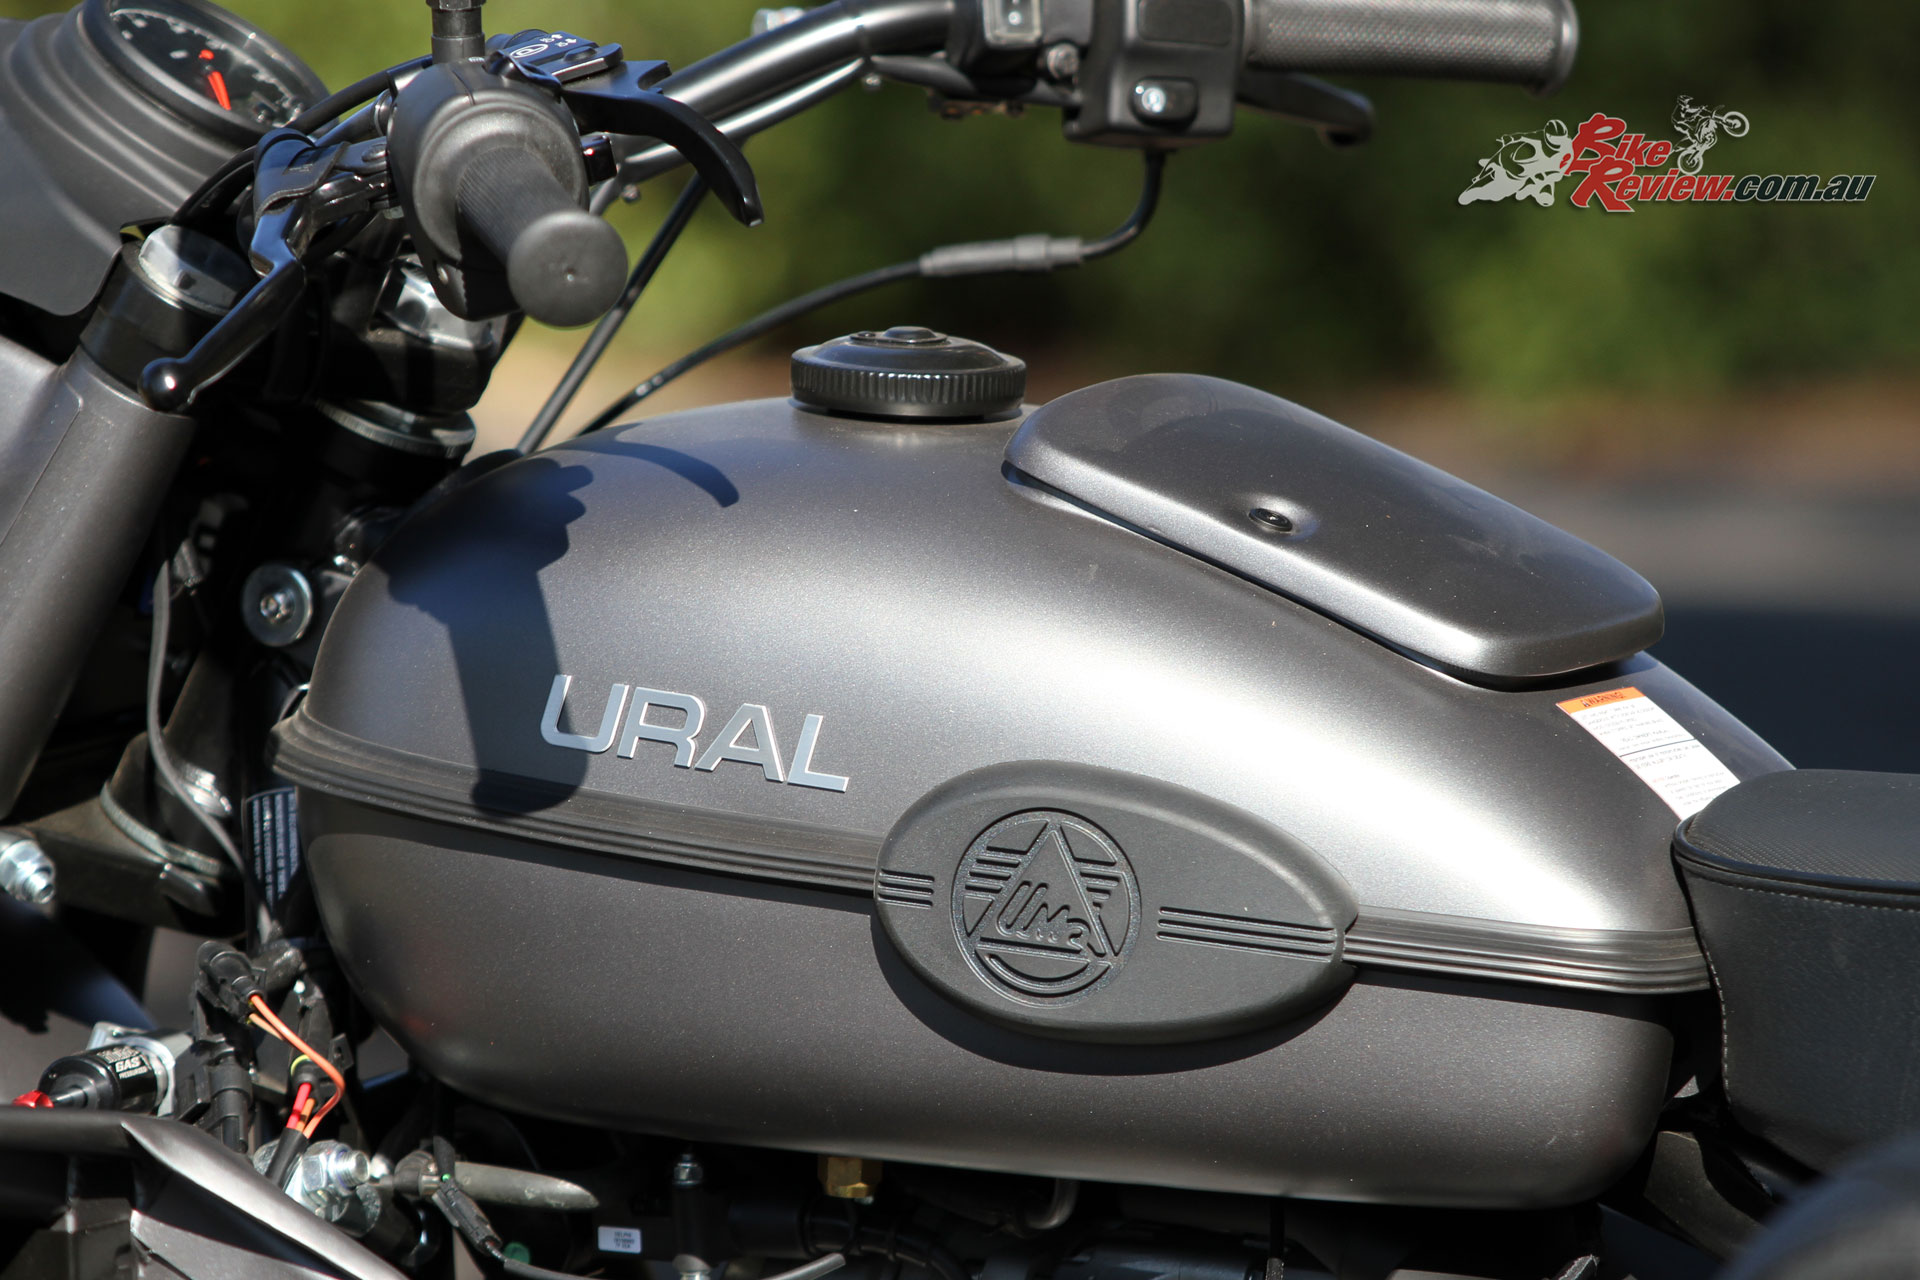 The Ural Ranger features a 19L fuel tank and a jerry can